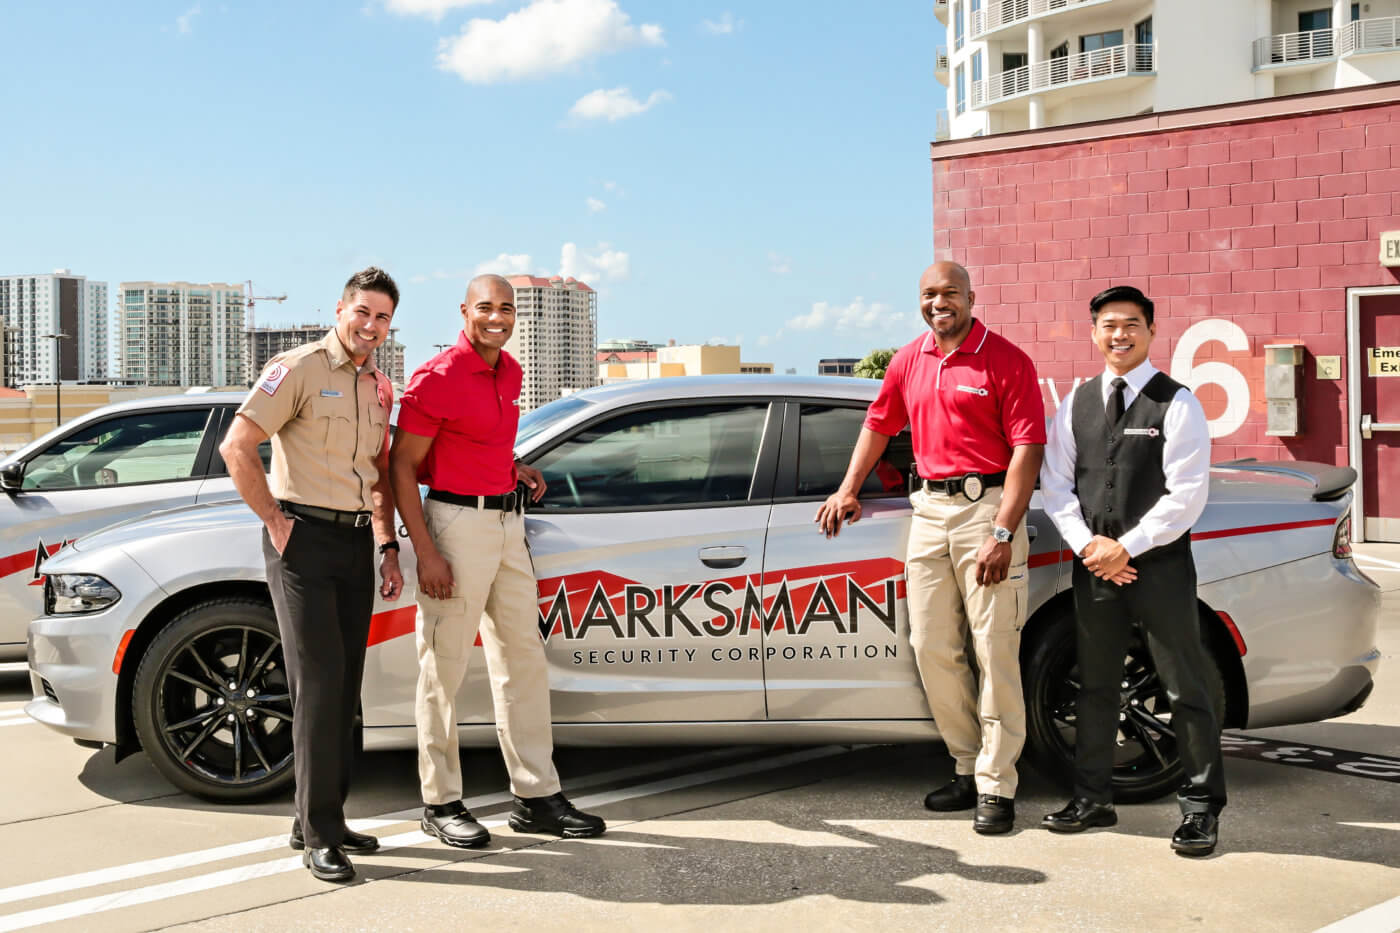 Marksman security team standing around car - we provides customized security solutions and security jobs